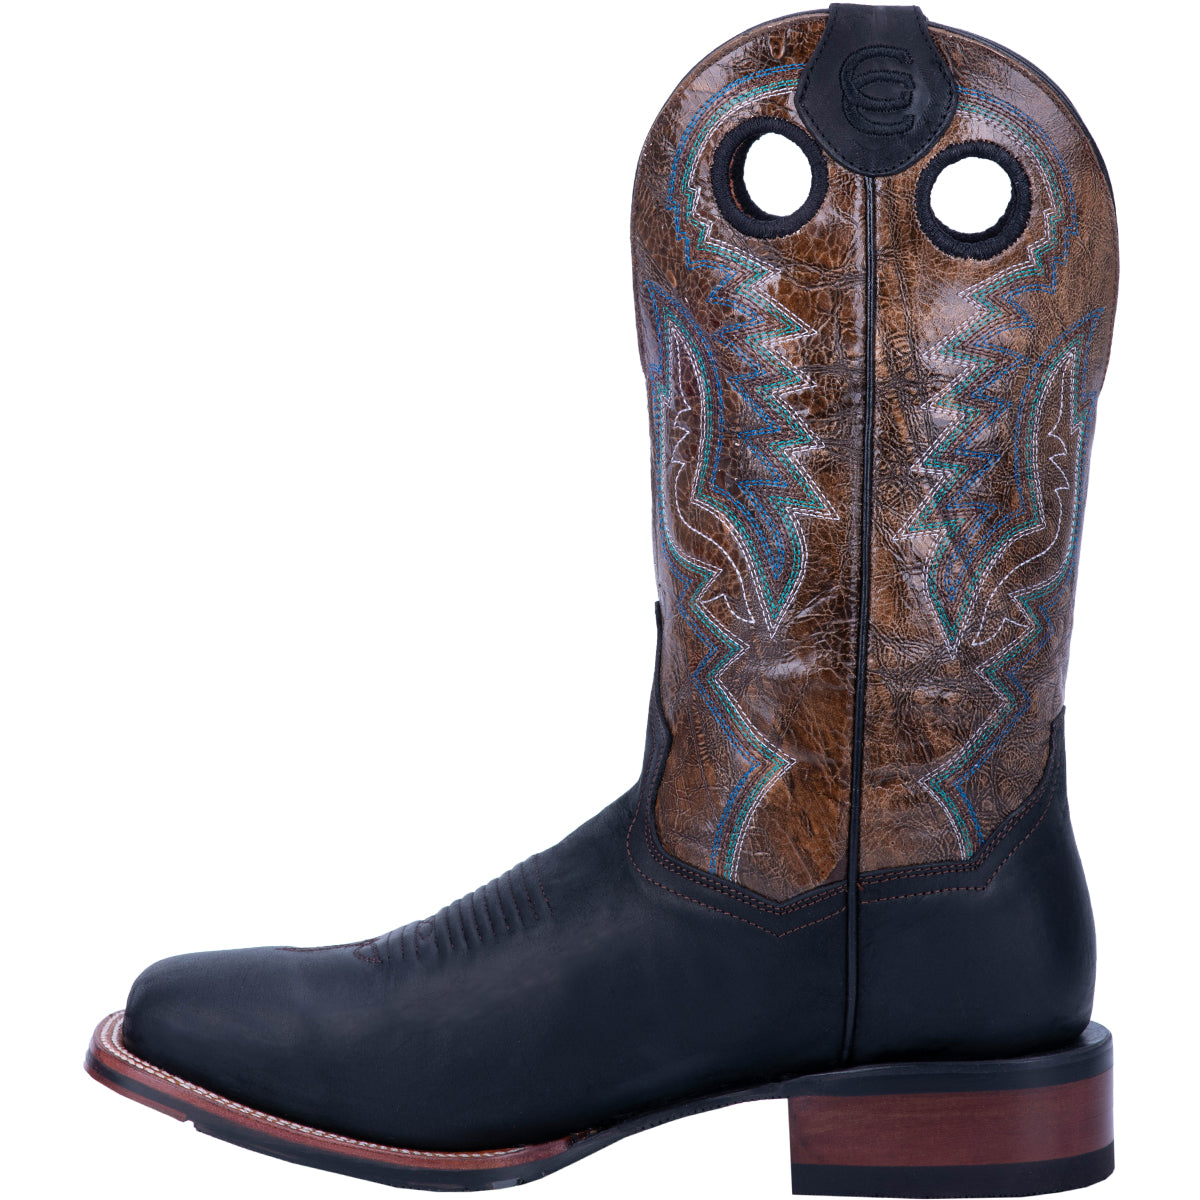 DEUCE LEATHER BOOT 11825132175402